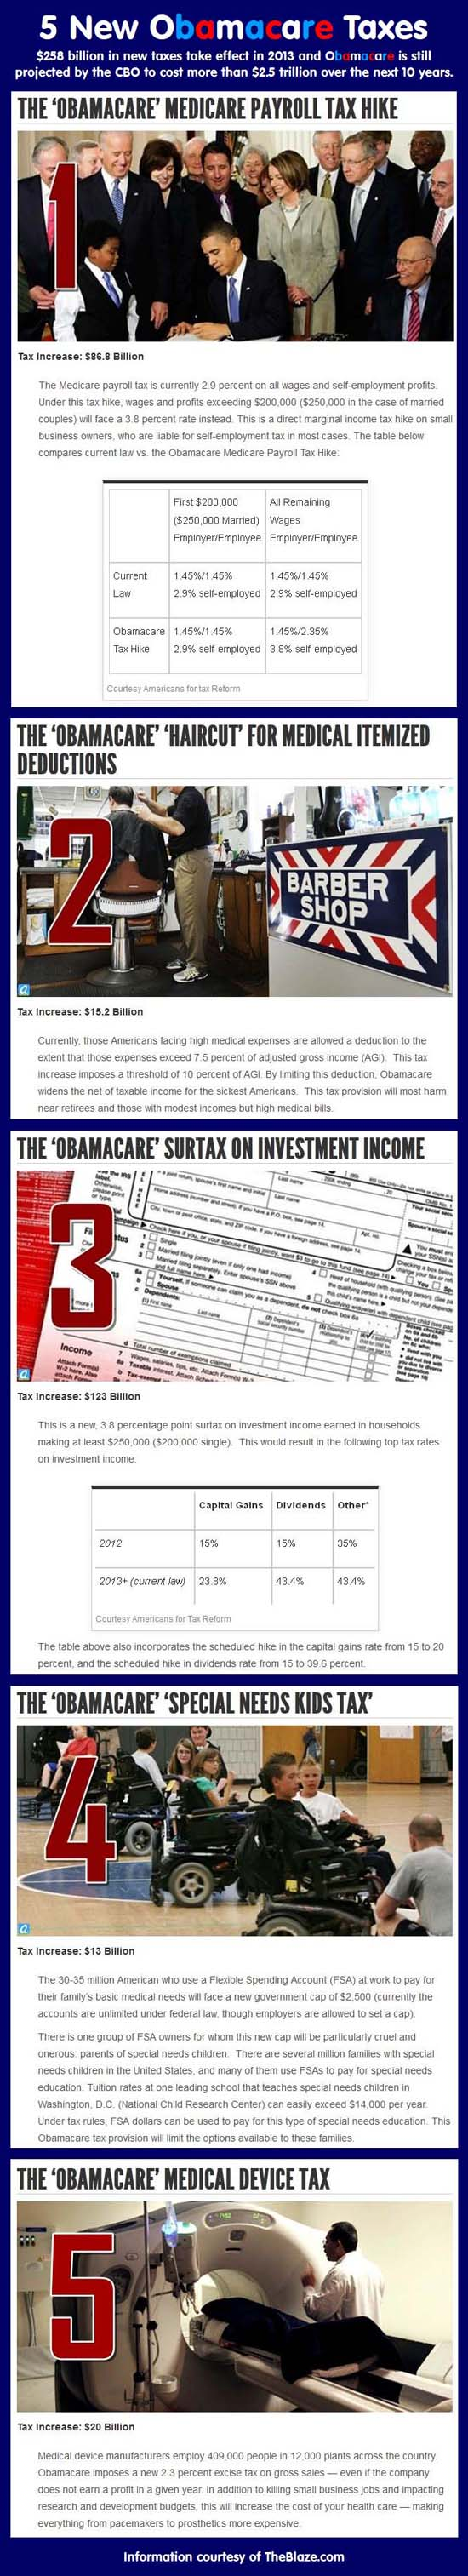 Infographic: 5 New Obamacare Taxes for 2013